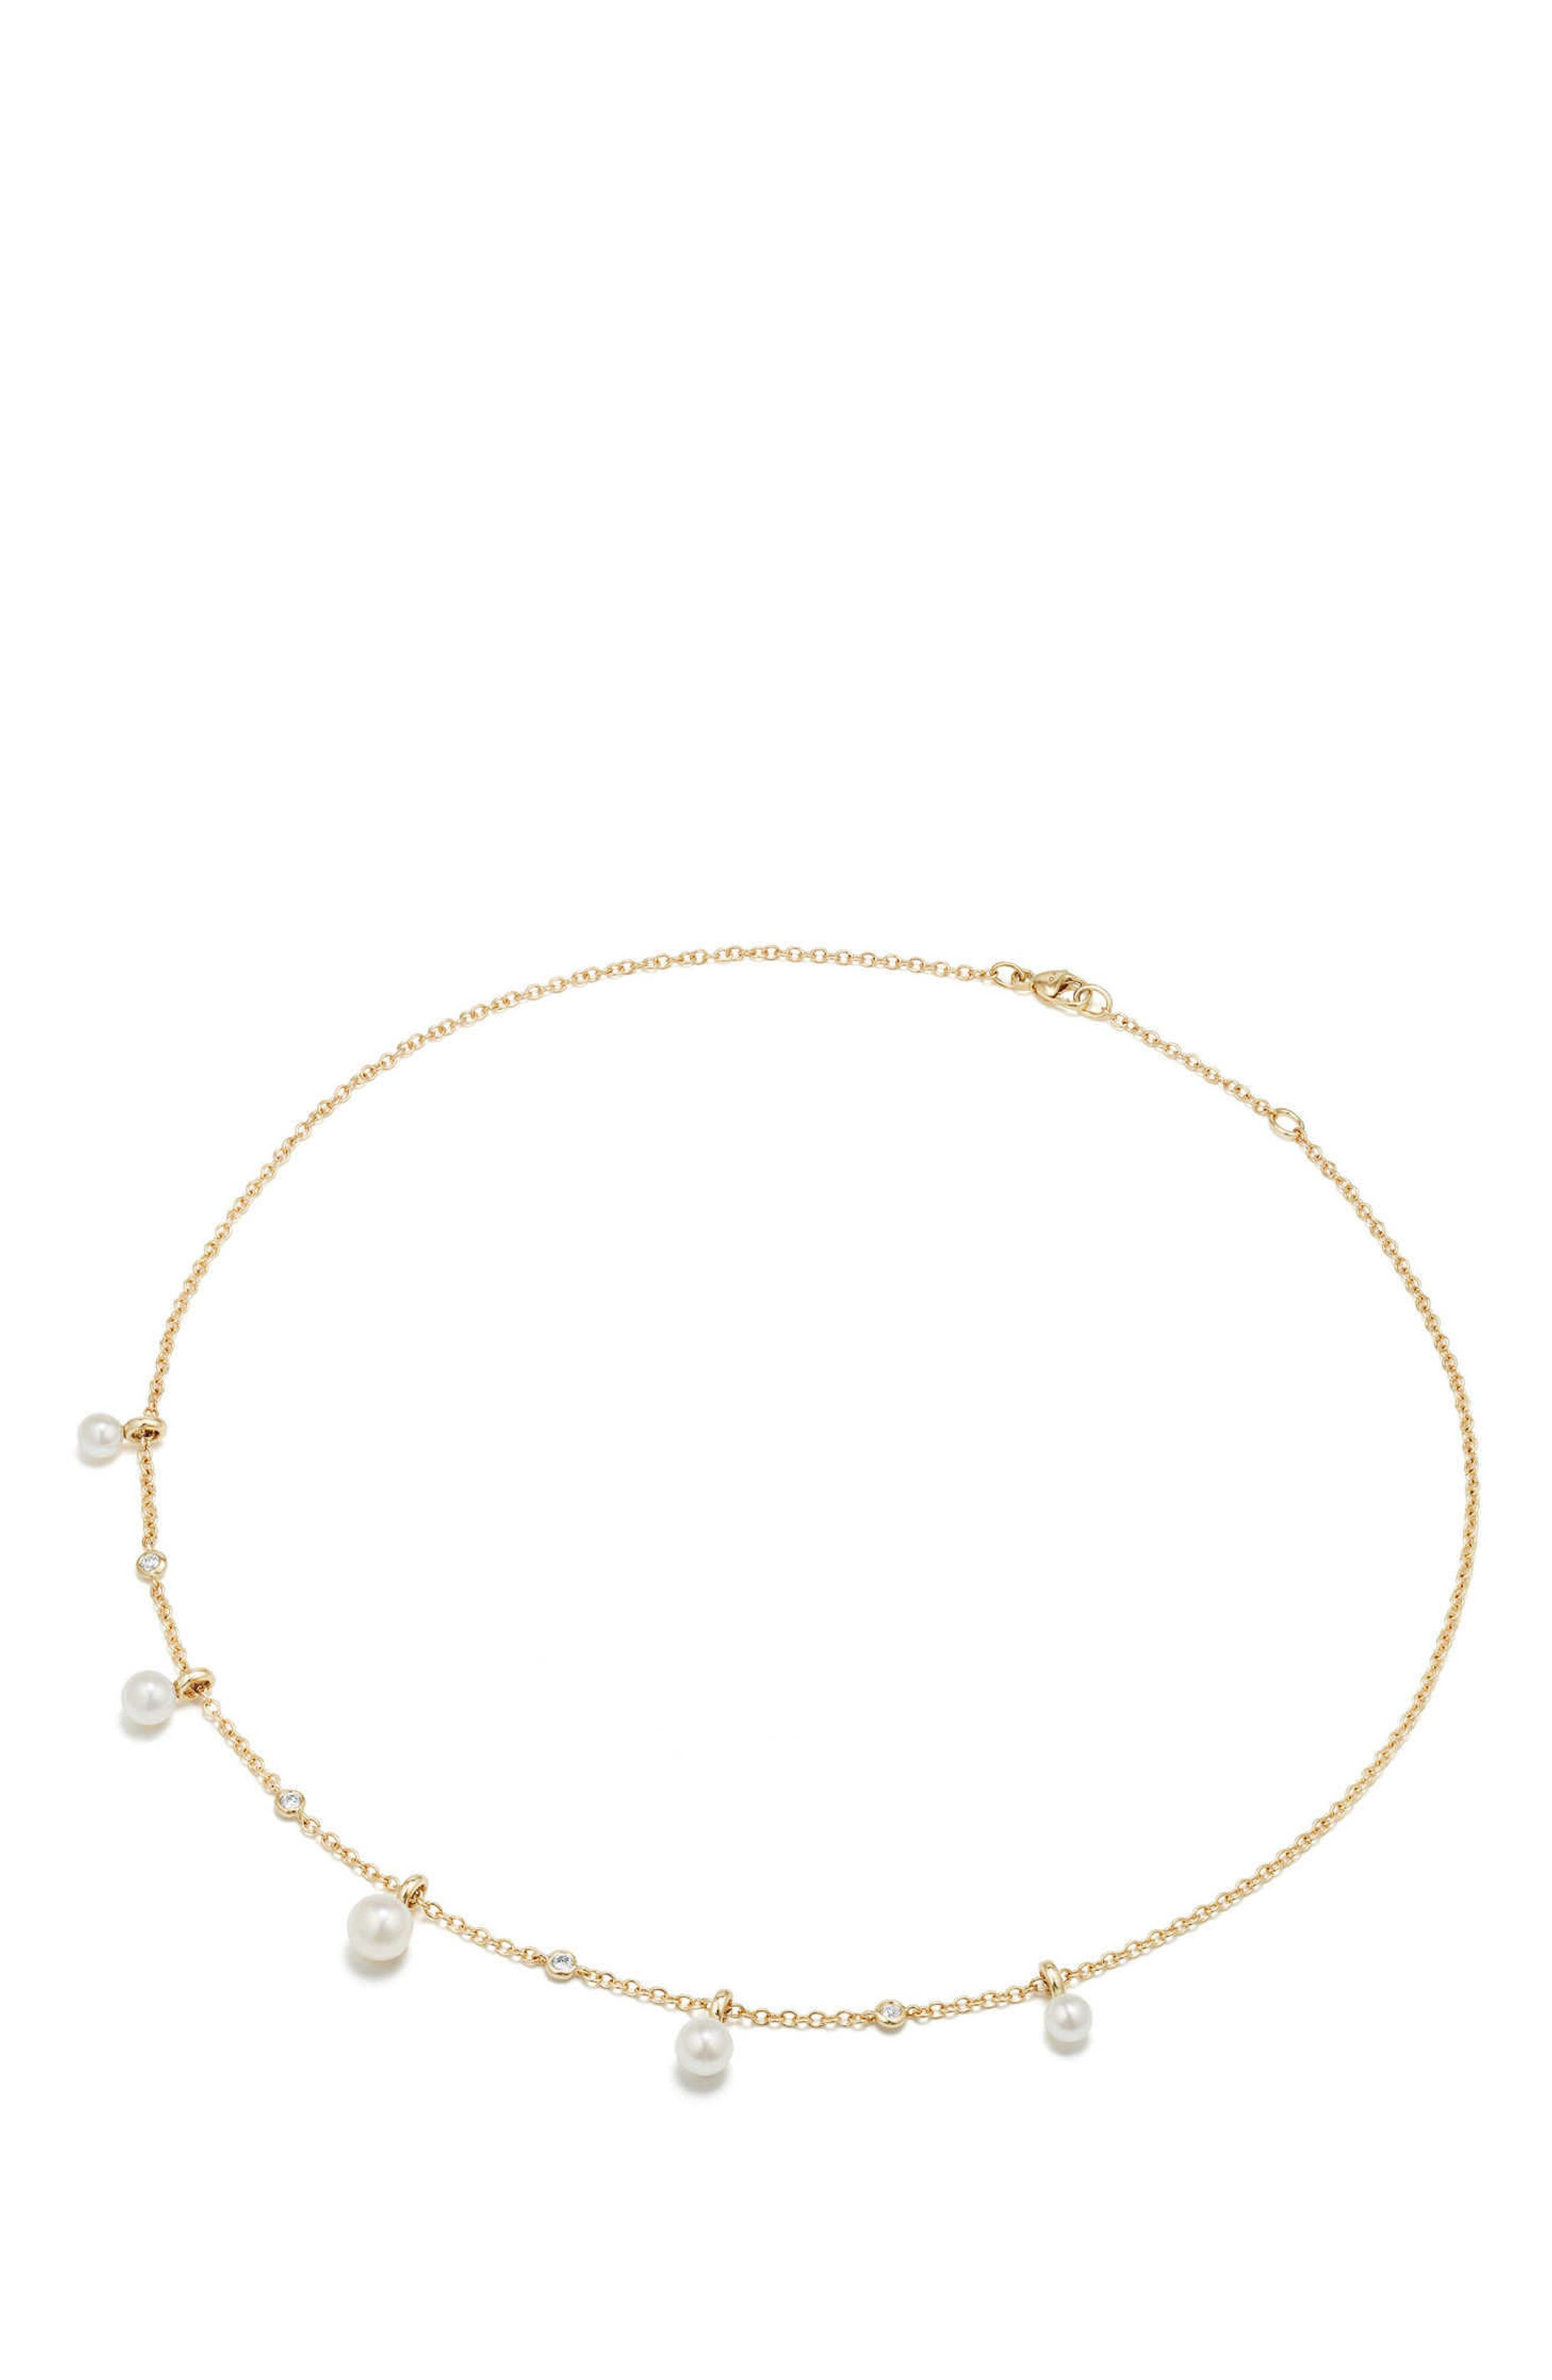 Petite Perle Pearl & Diamond Fringe Necklace in 18k Gold,                             Alternate thumbnail 2, color,                             Gold/ Diamond/ Pearl